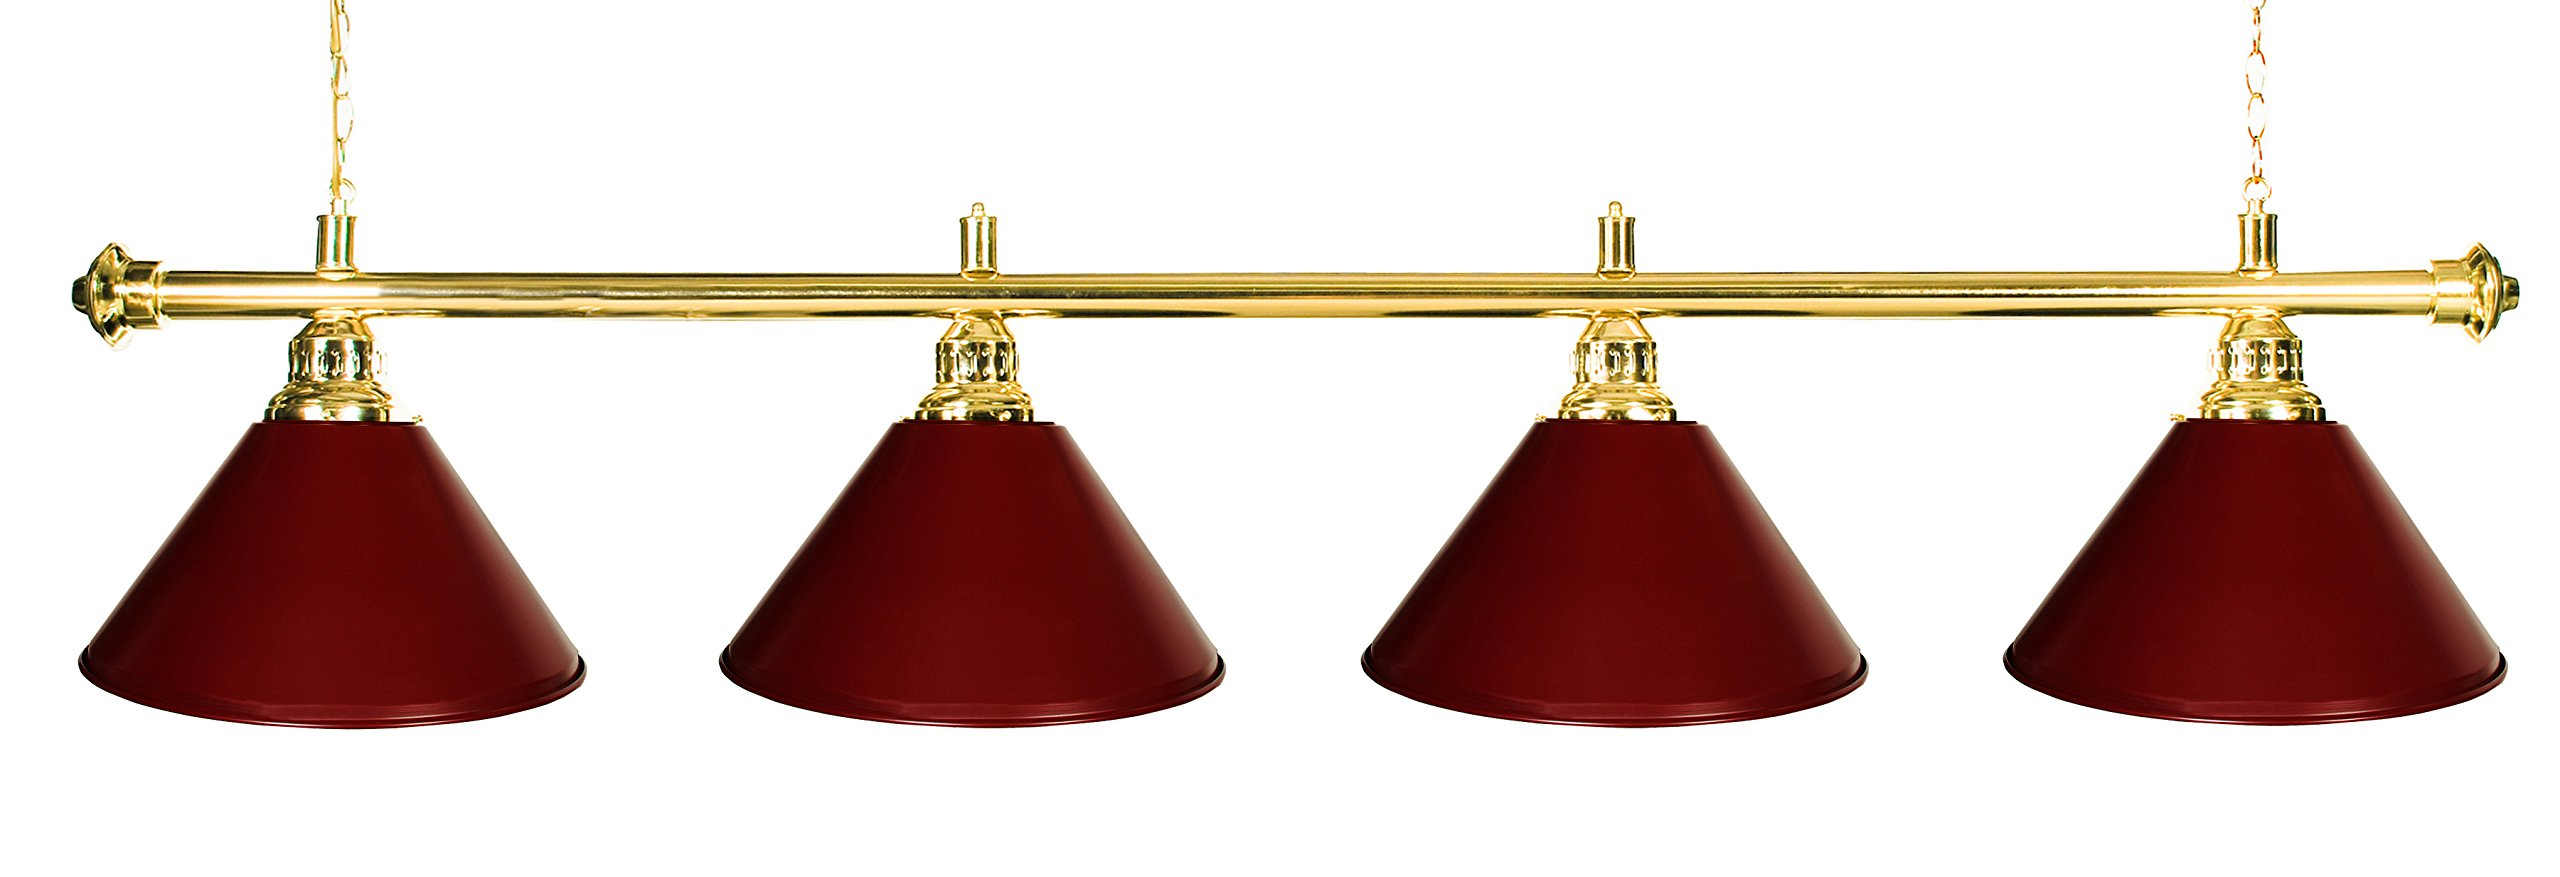 Iszy Billiards Metal Pool Table Light Billiard Lamp, Brass Rod with Burgundy Shades, 72-Inch